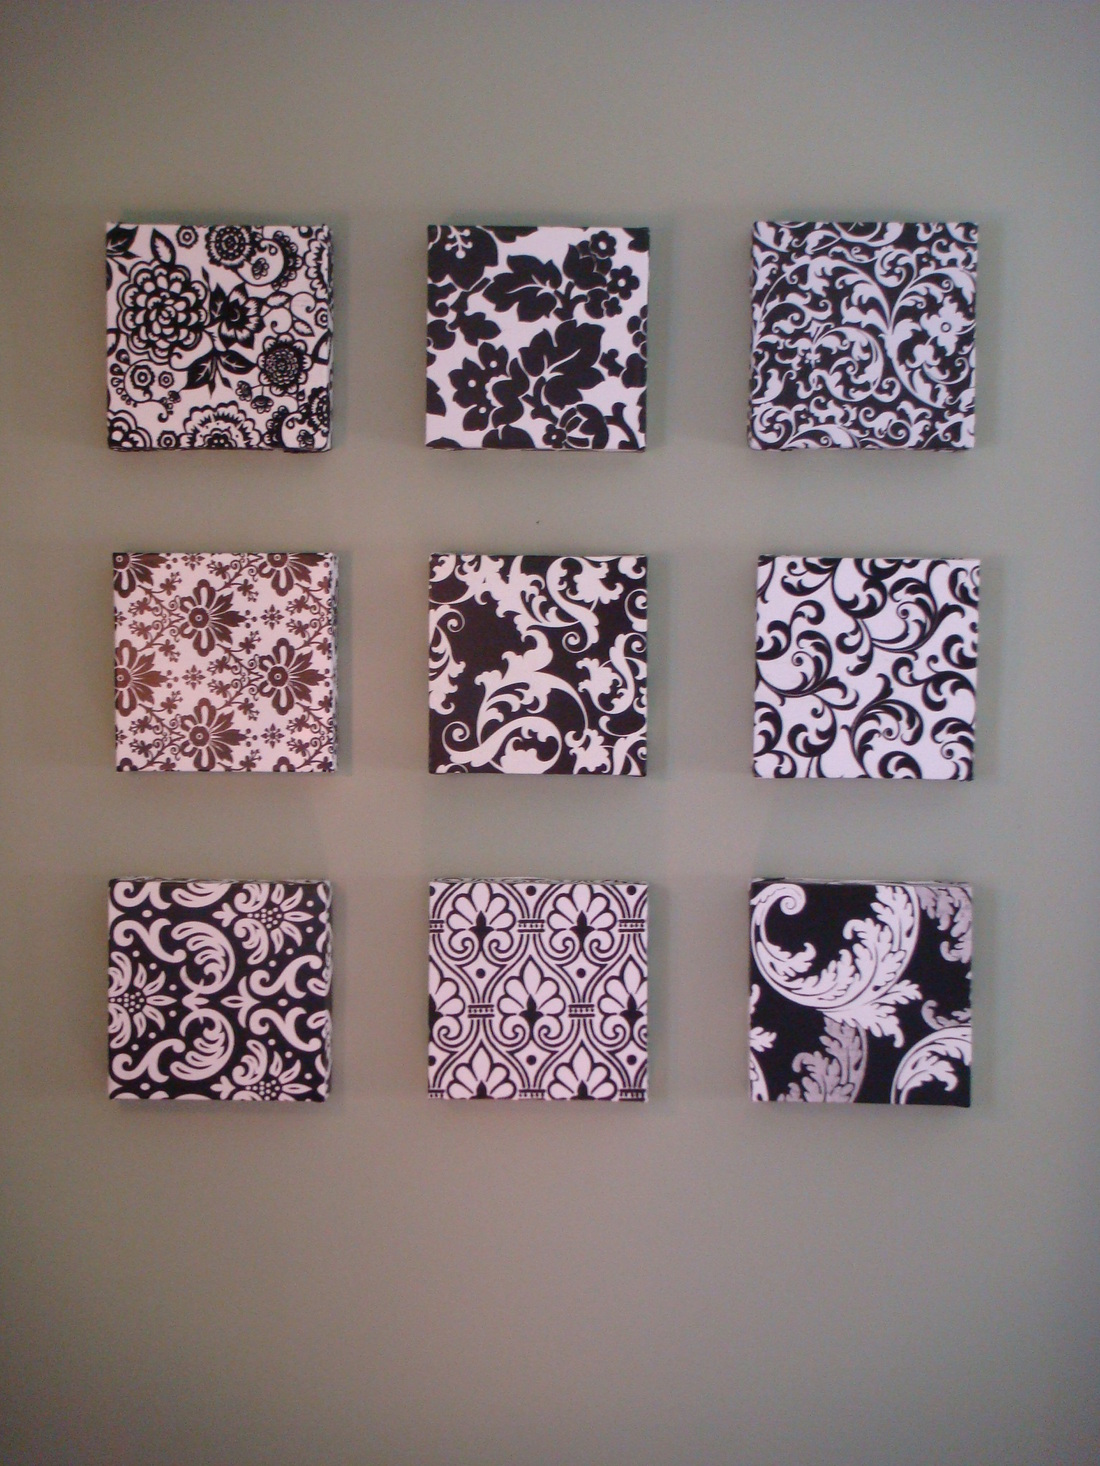 More Cheap And Easy Wall Art Sew Classy Designs And